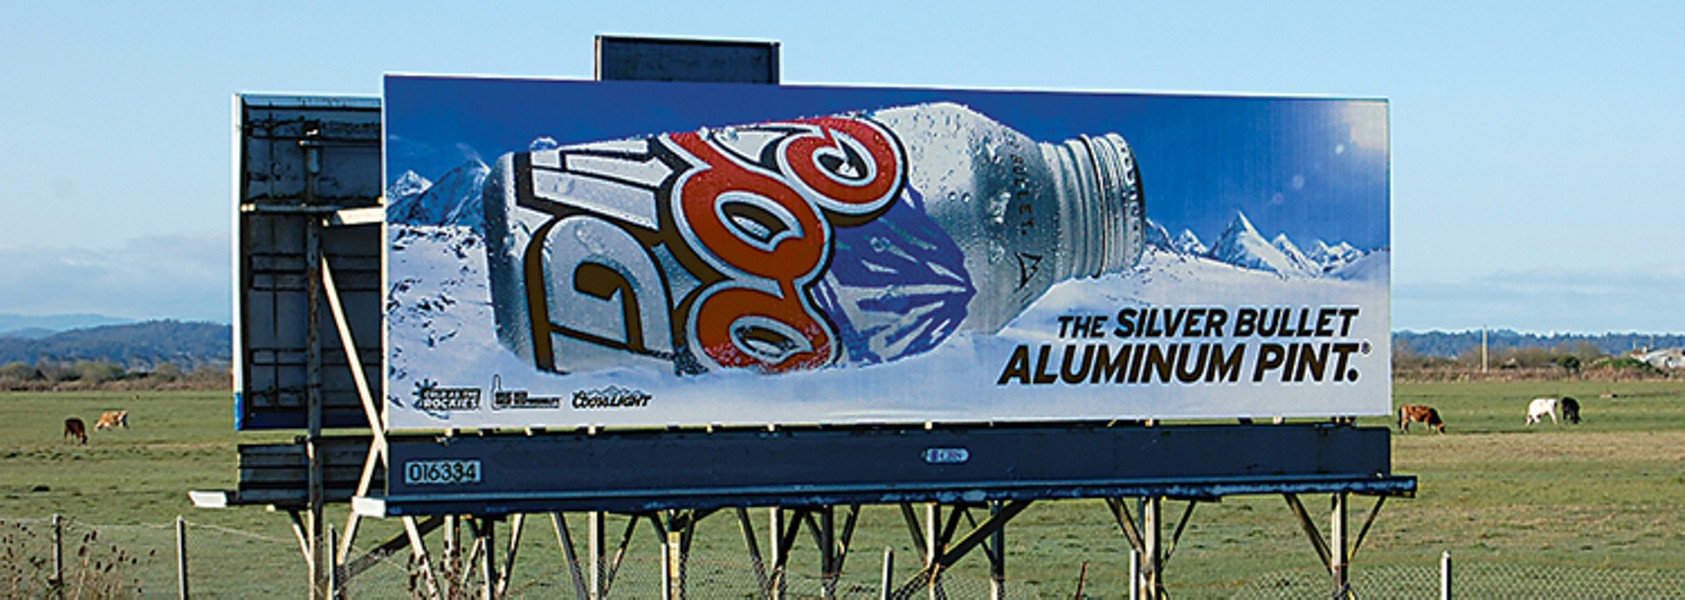 In case you missed it, the winner of our ugliest billboard contest. - PHOTO BY ANDREW GOFF